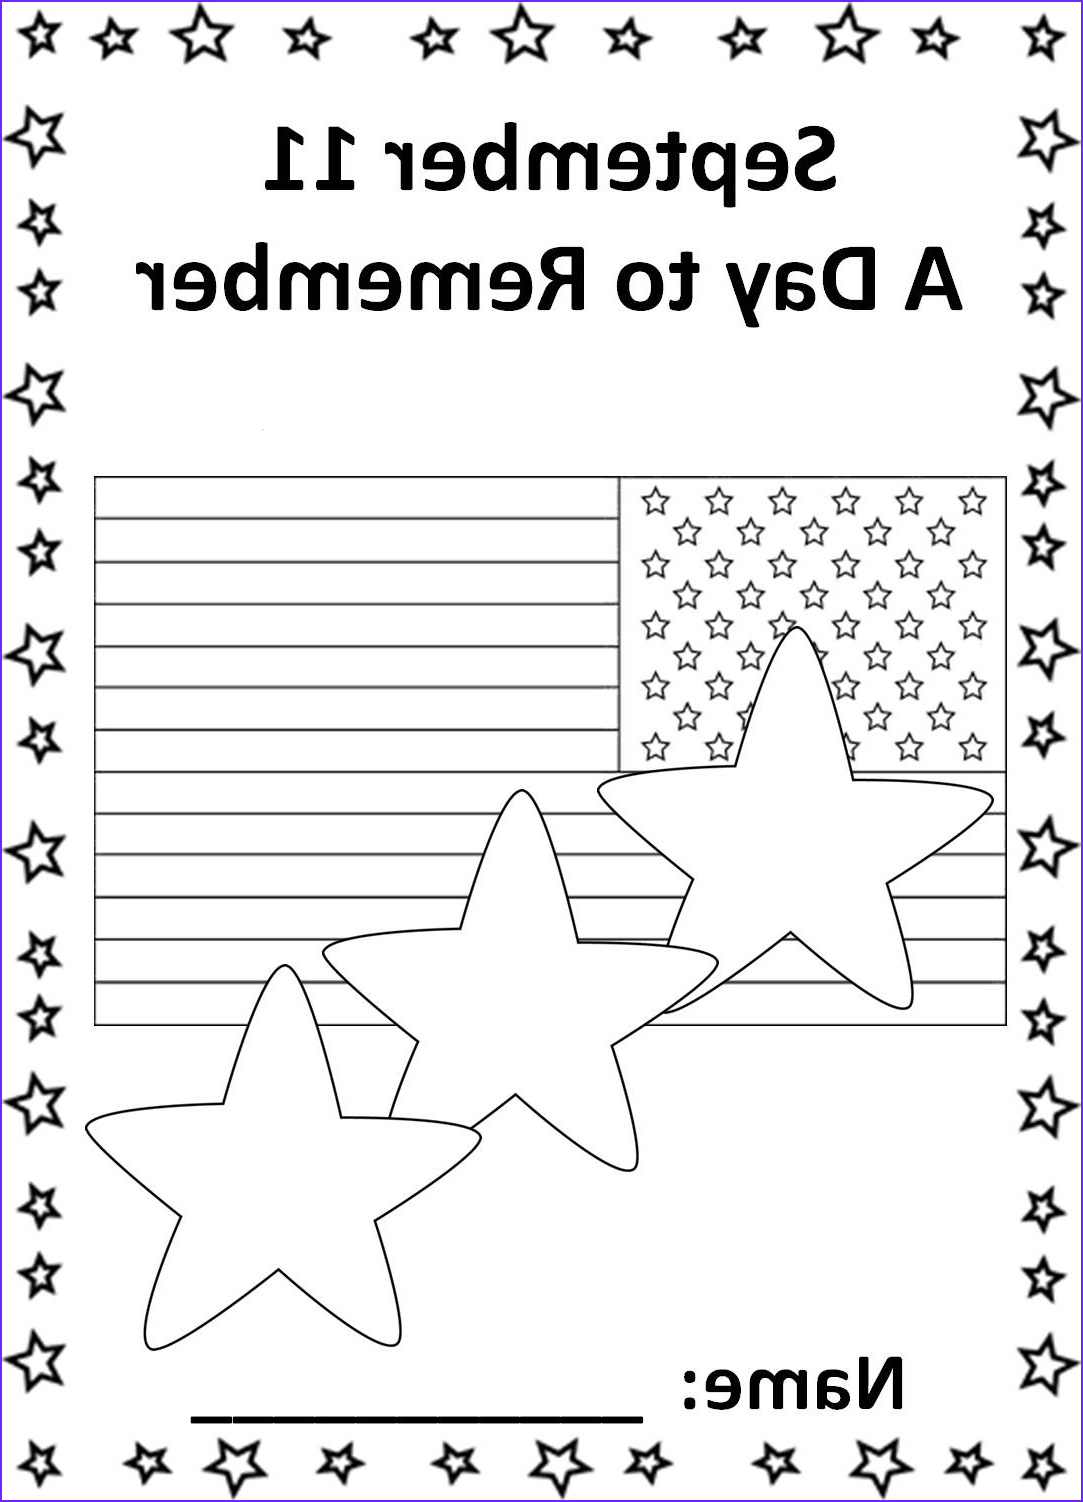 9 11 Coloring Pages Beautiful Images 9 11 Coloring Pages Patriots Day Best Coloring Pages